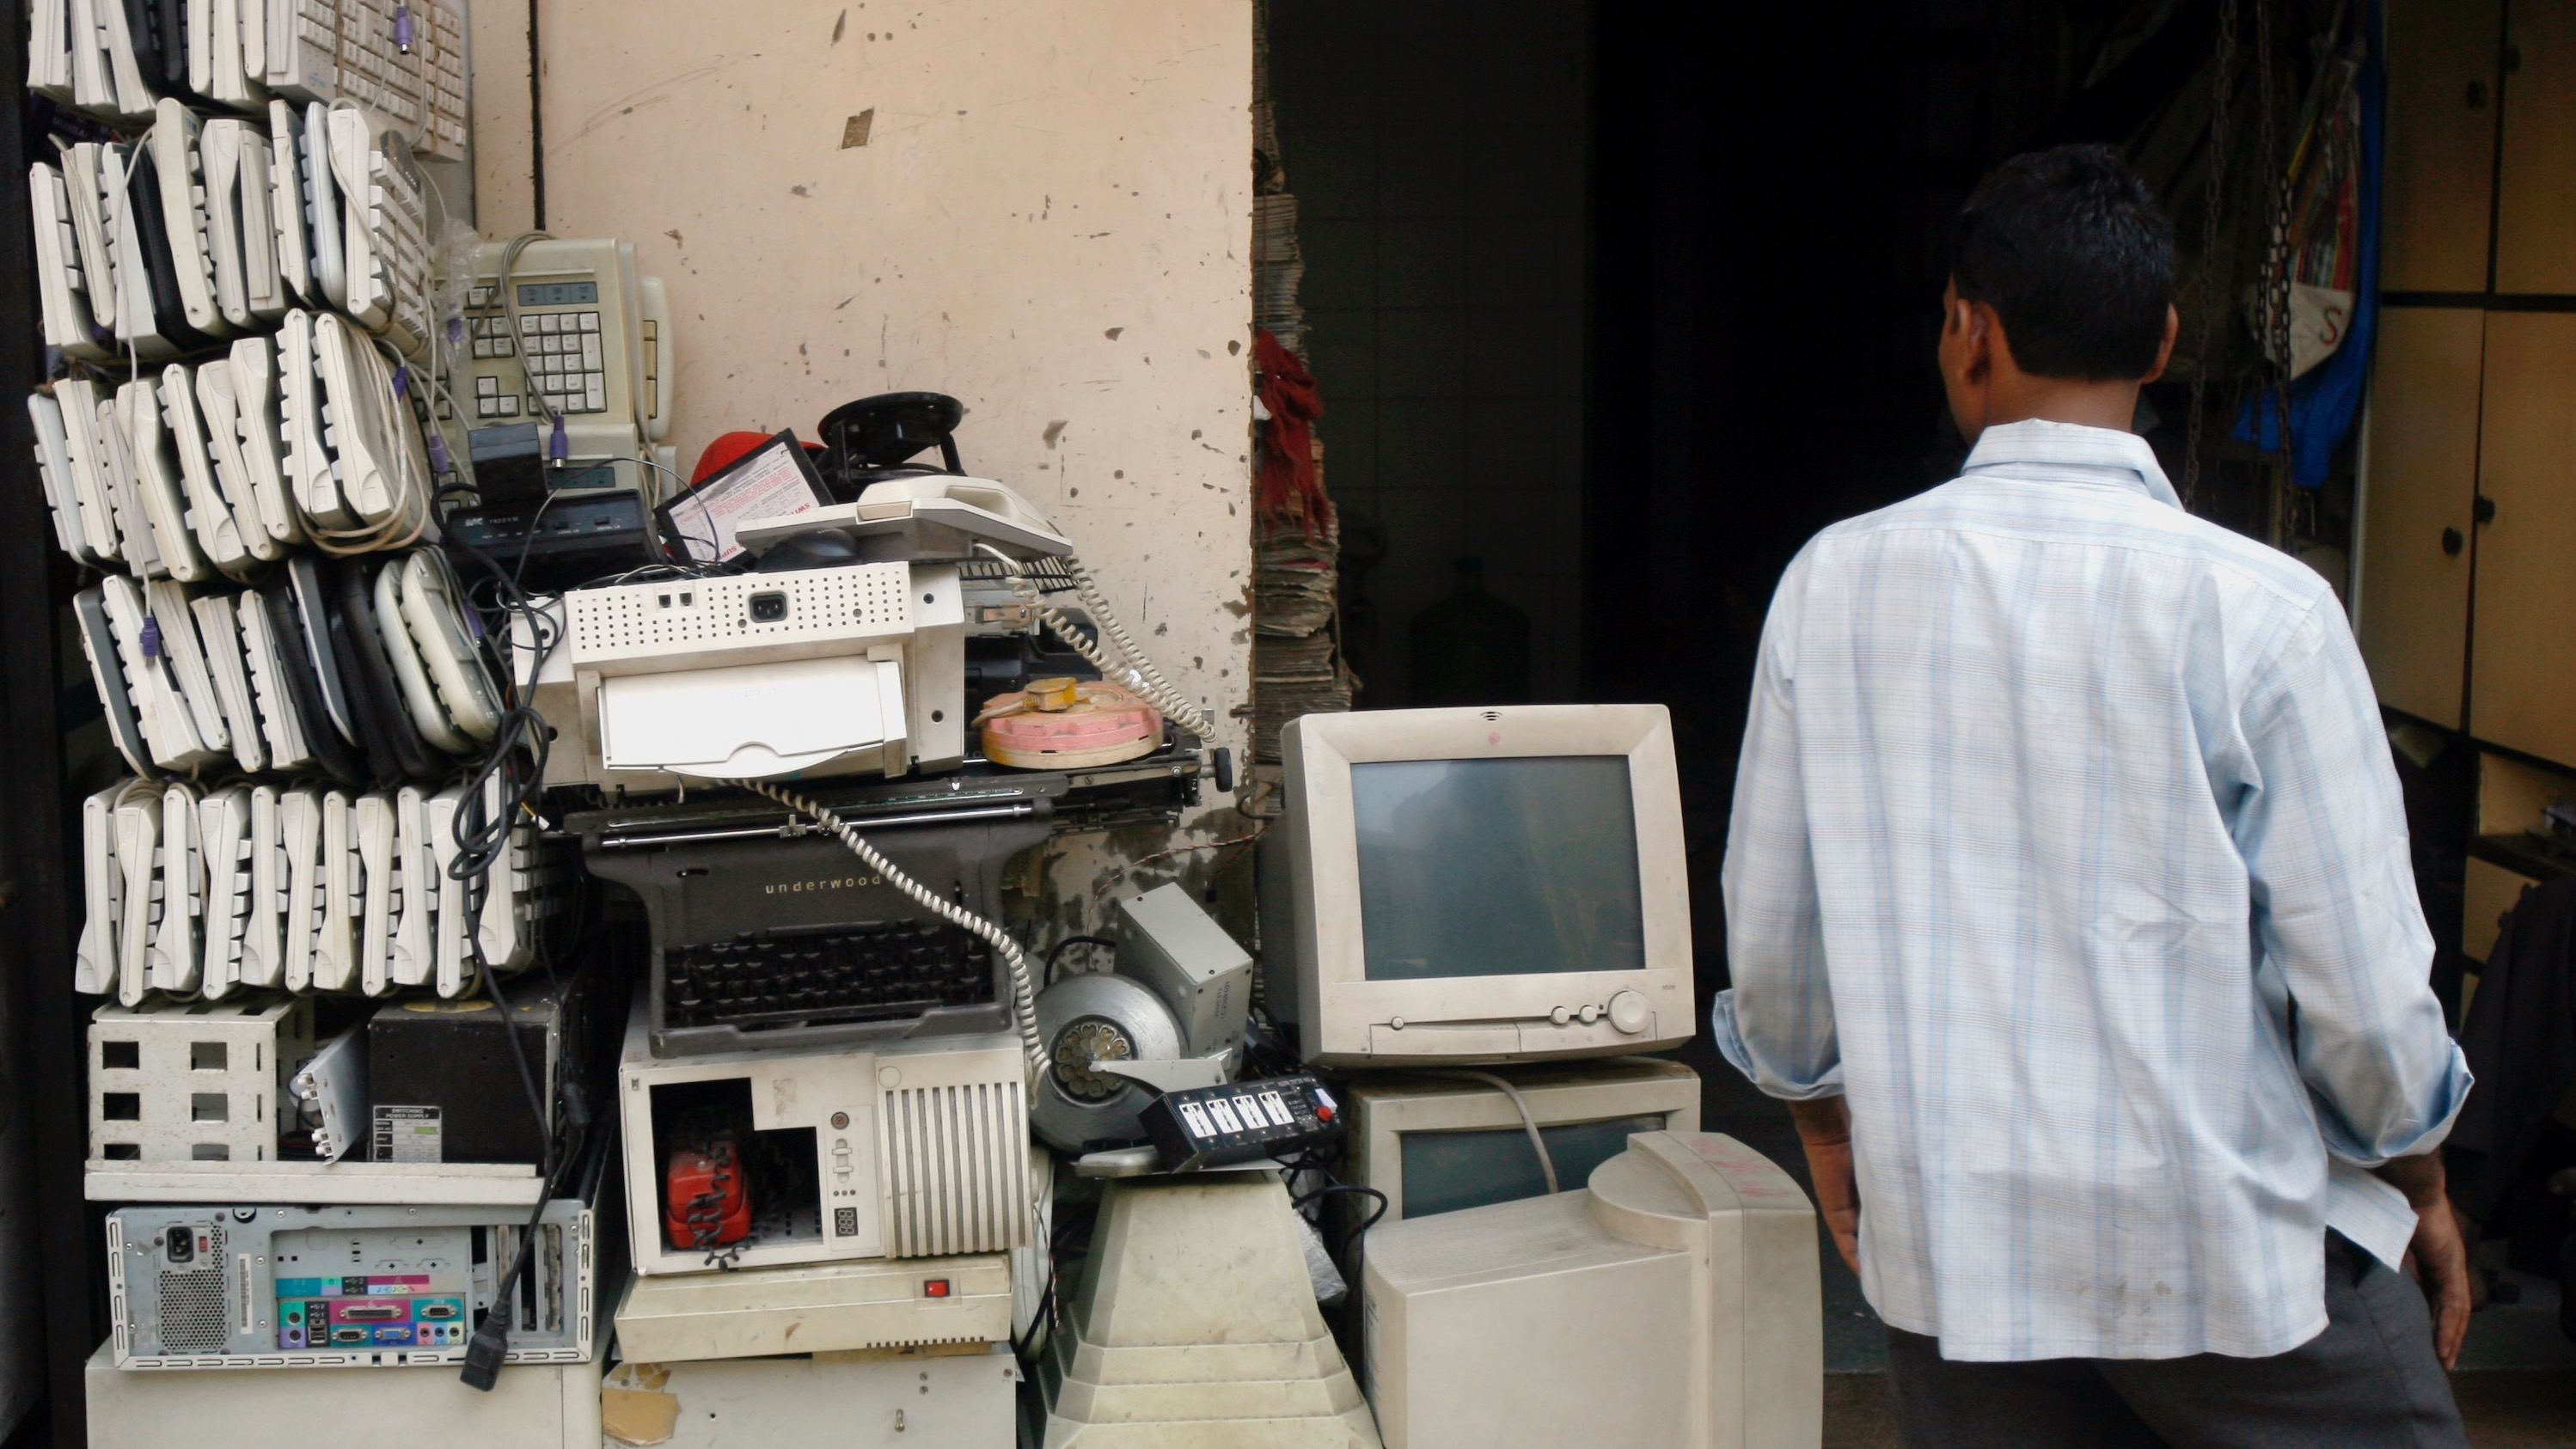 A man walks past electronic waste, also known as e-waste, at a junk shop in Mumbai October 27, 2008. REUTERS/Arko Datta (INDIA) - RTX9YMM